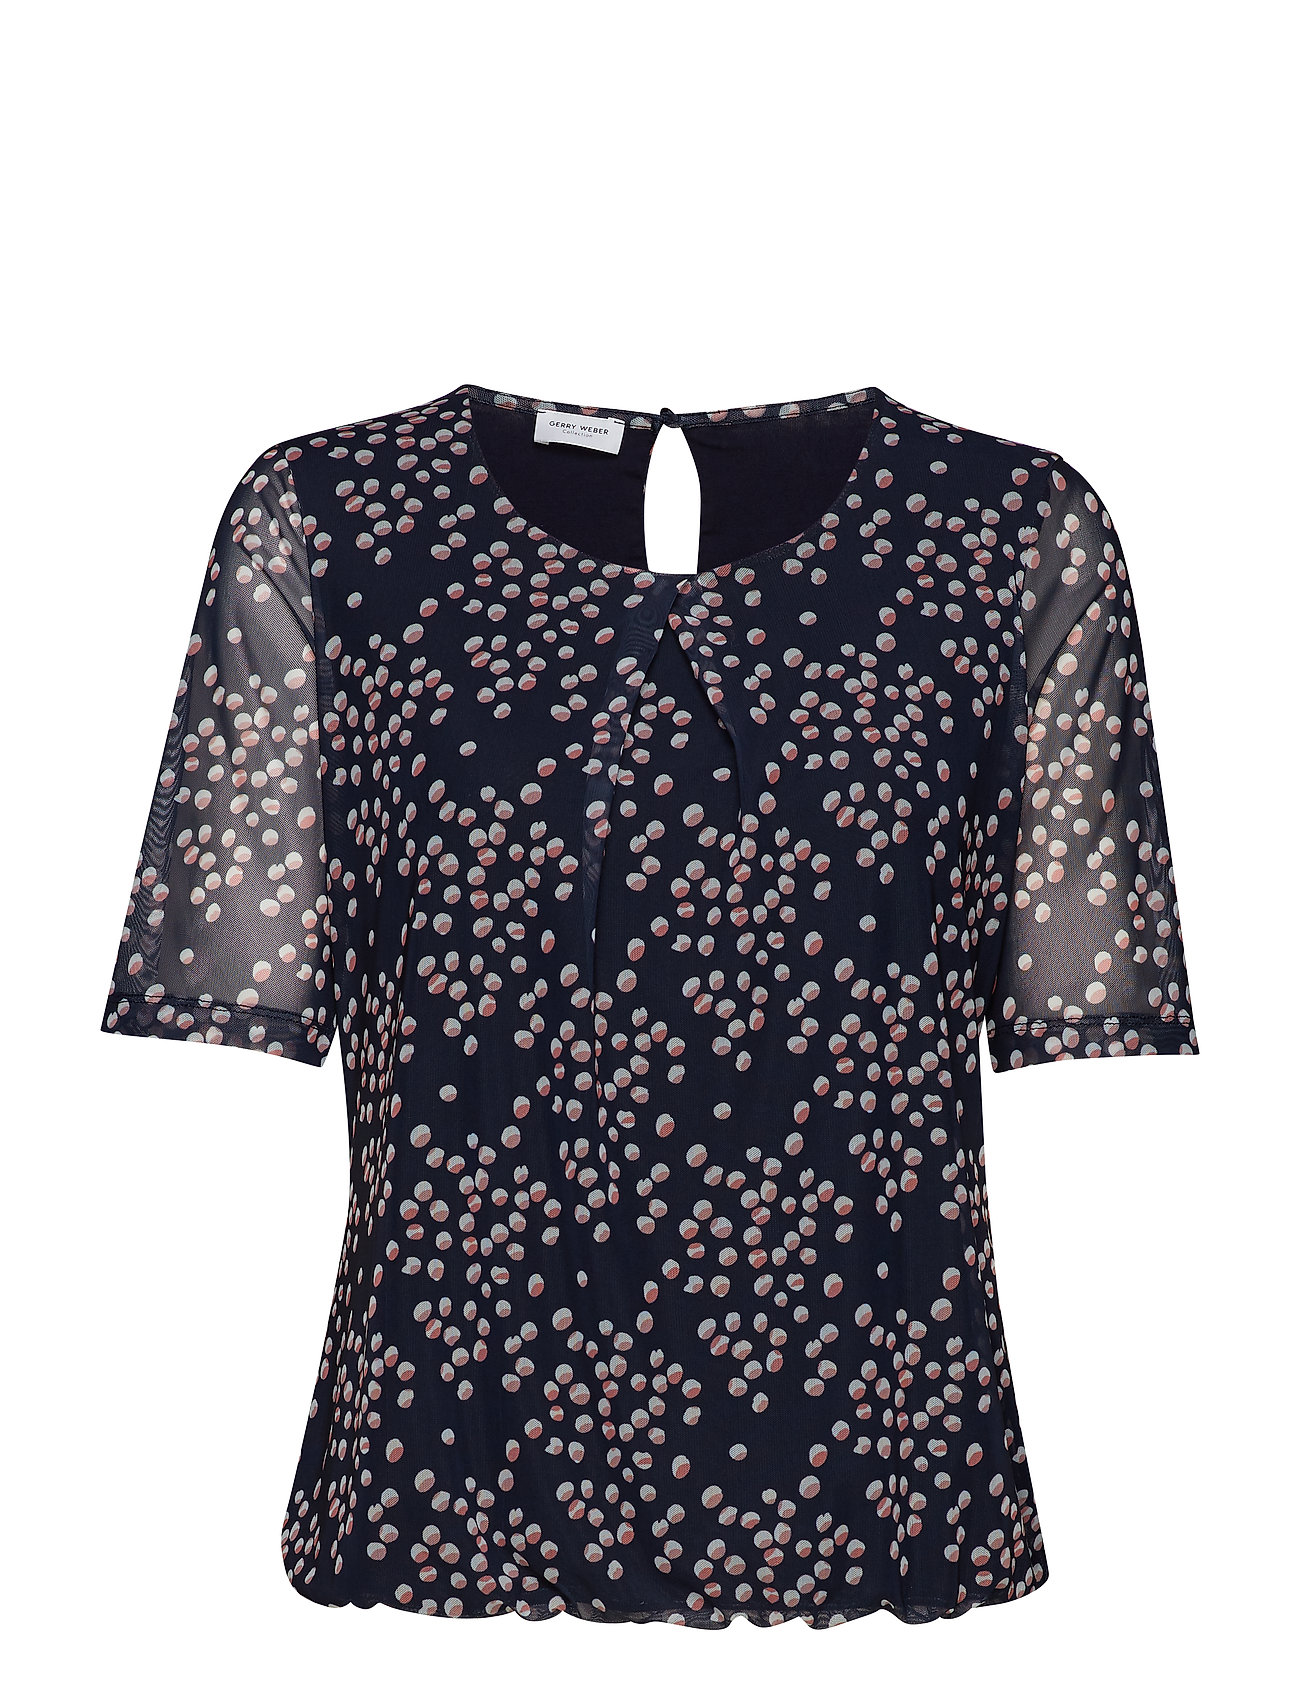 Gerry Weber T-SHIRT SHORT-SLEEVE - BLUE/ BLUSH/ BRICK PRINT